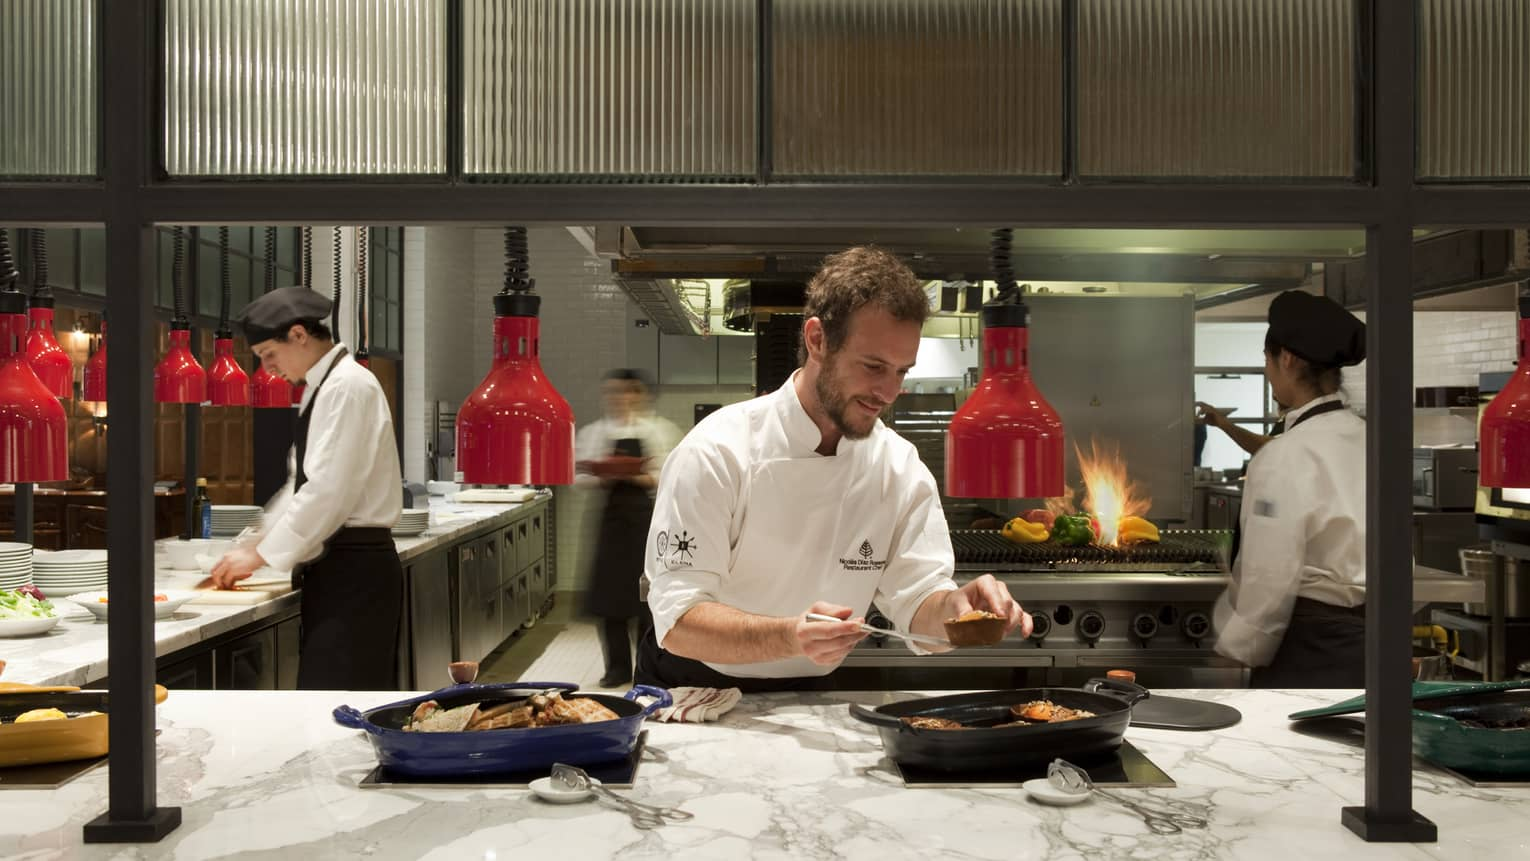 Chefs assemble dishes in a bustling kitchen, lit by red lights